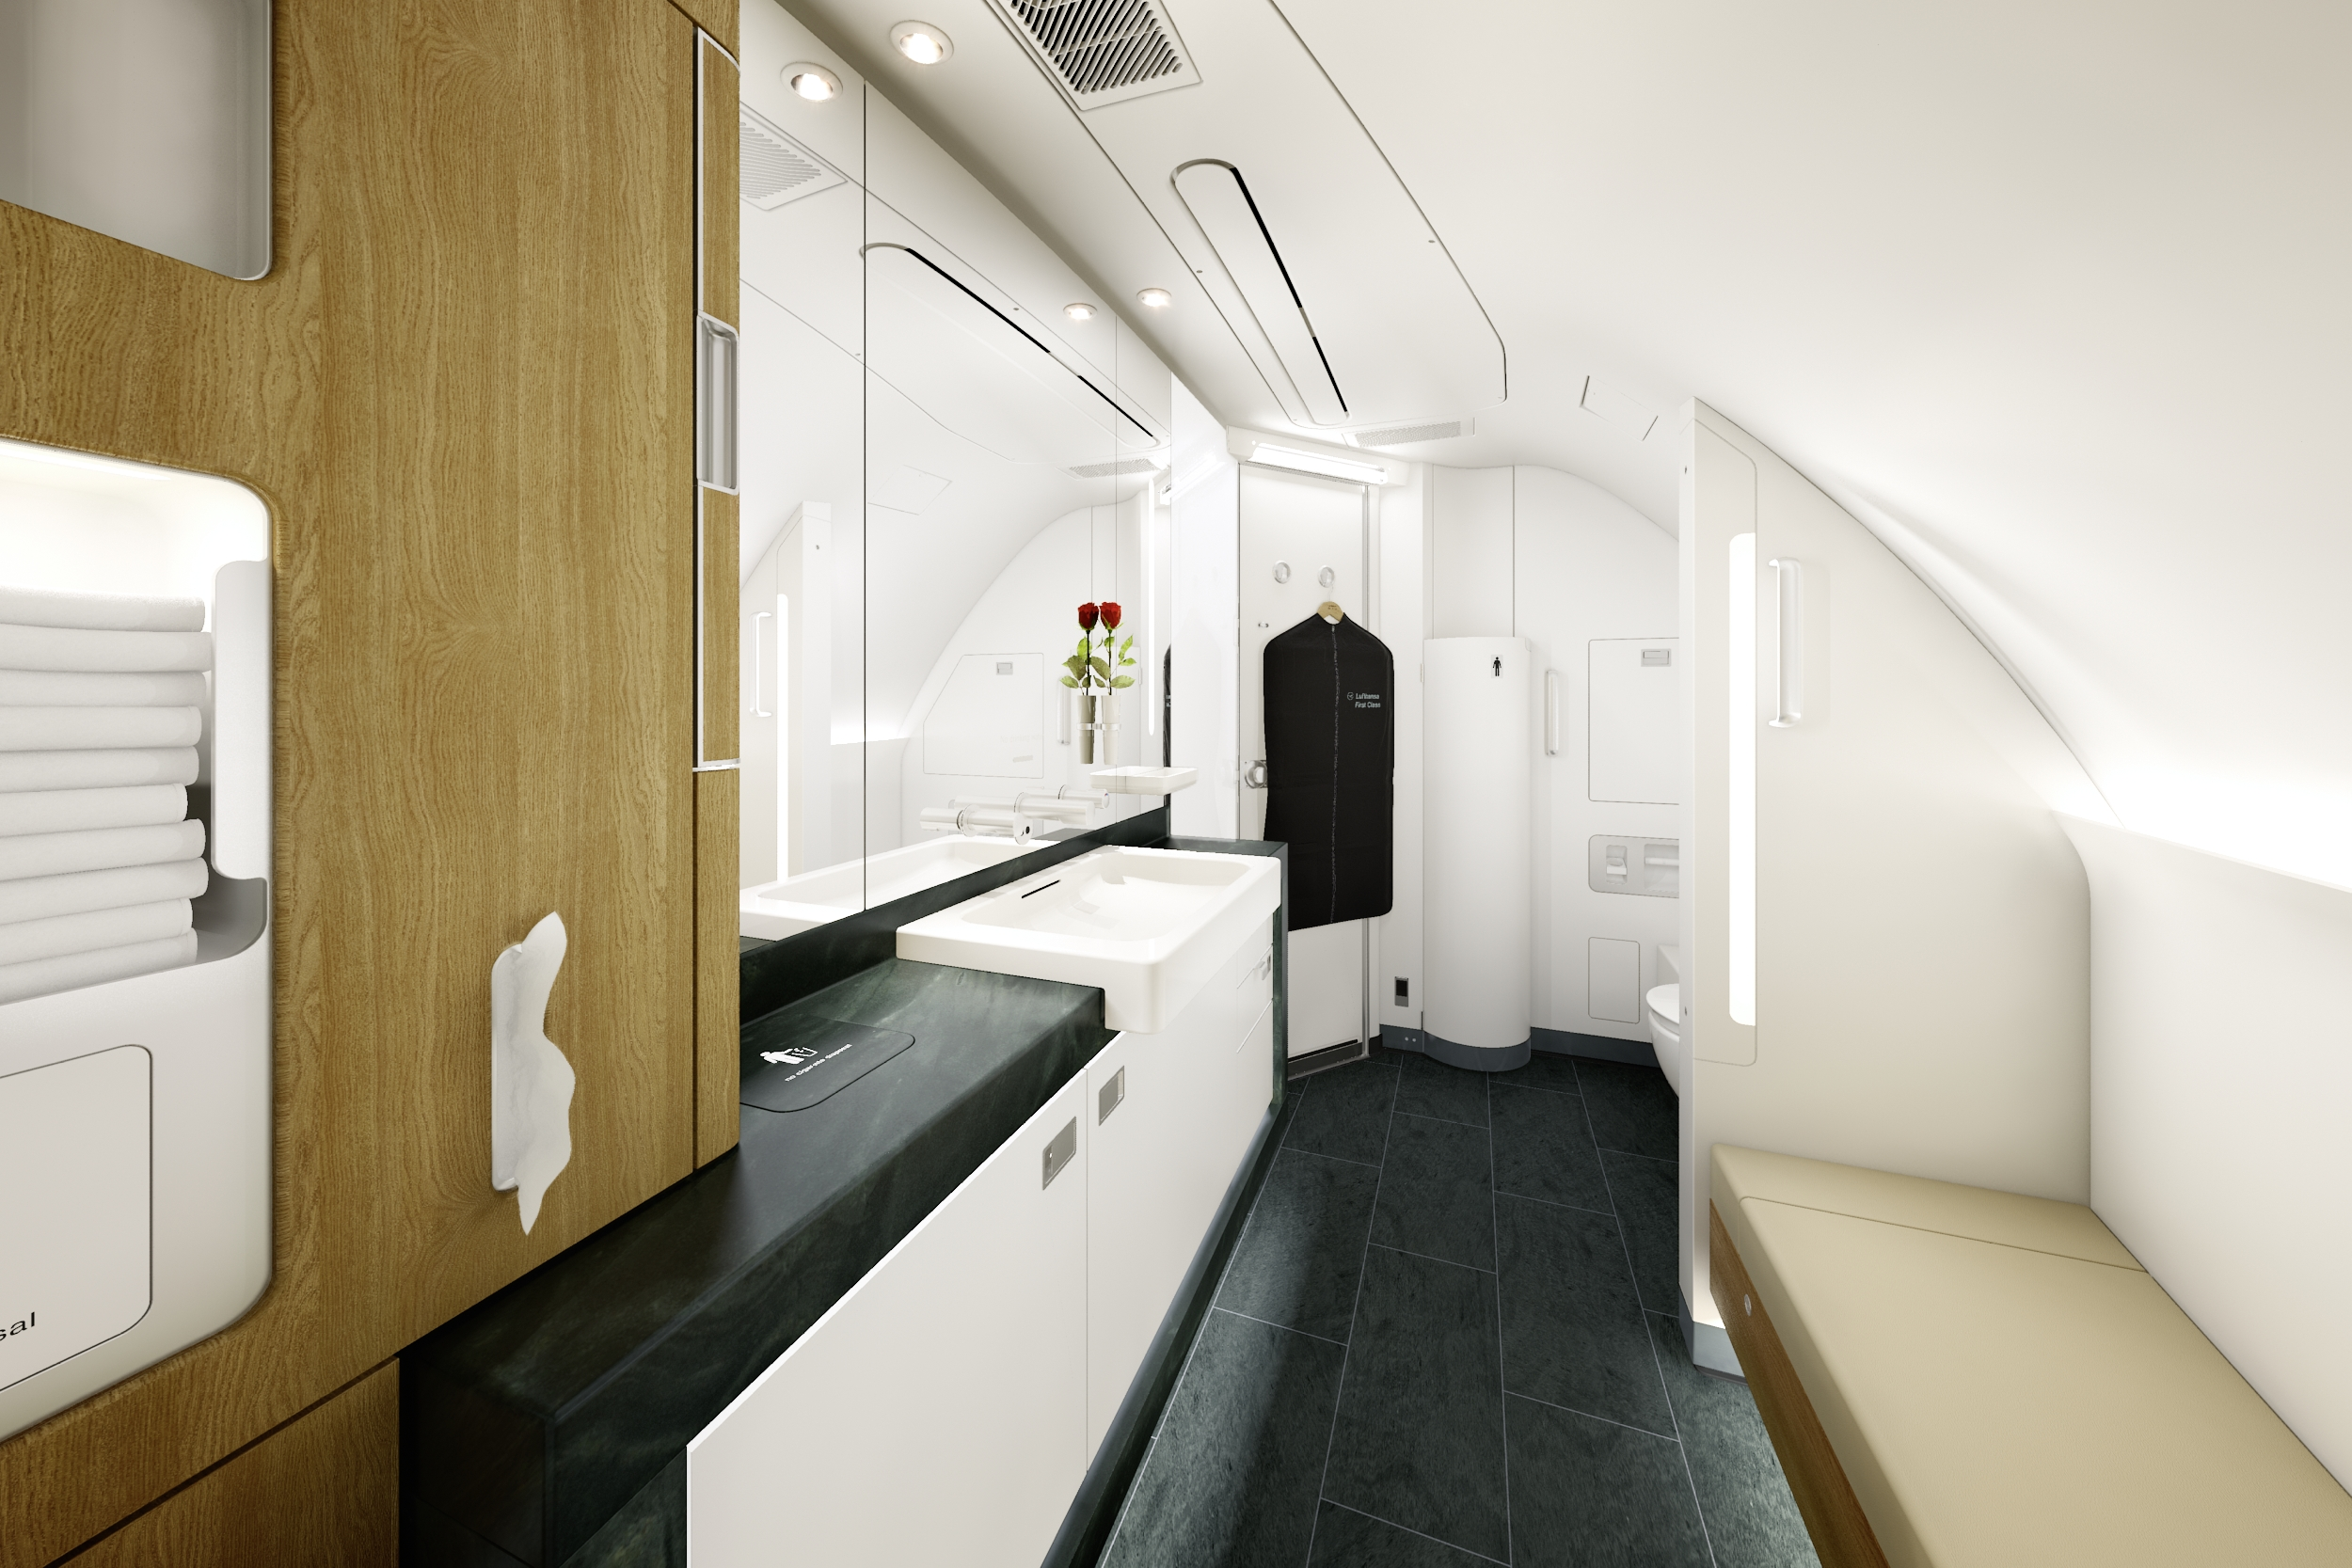 lufthansa first class angebote ab dublin insideflyer de. Black Bedroom Furniture Sets. Home Design Ideas